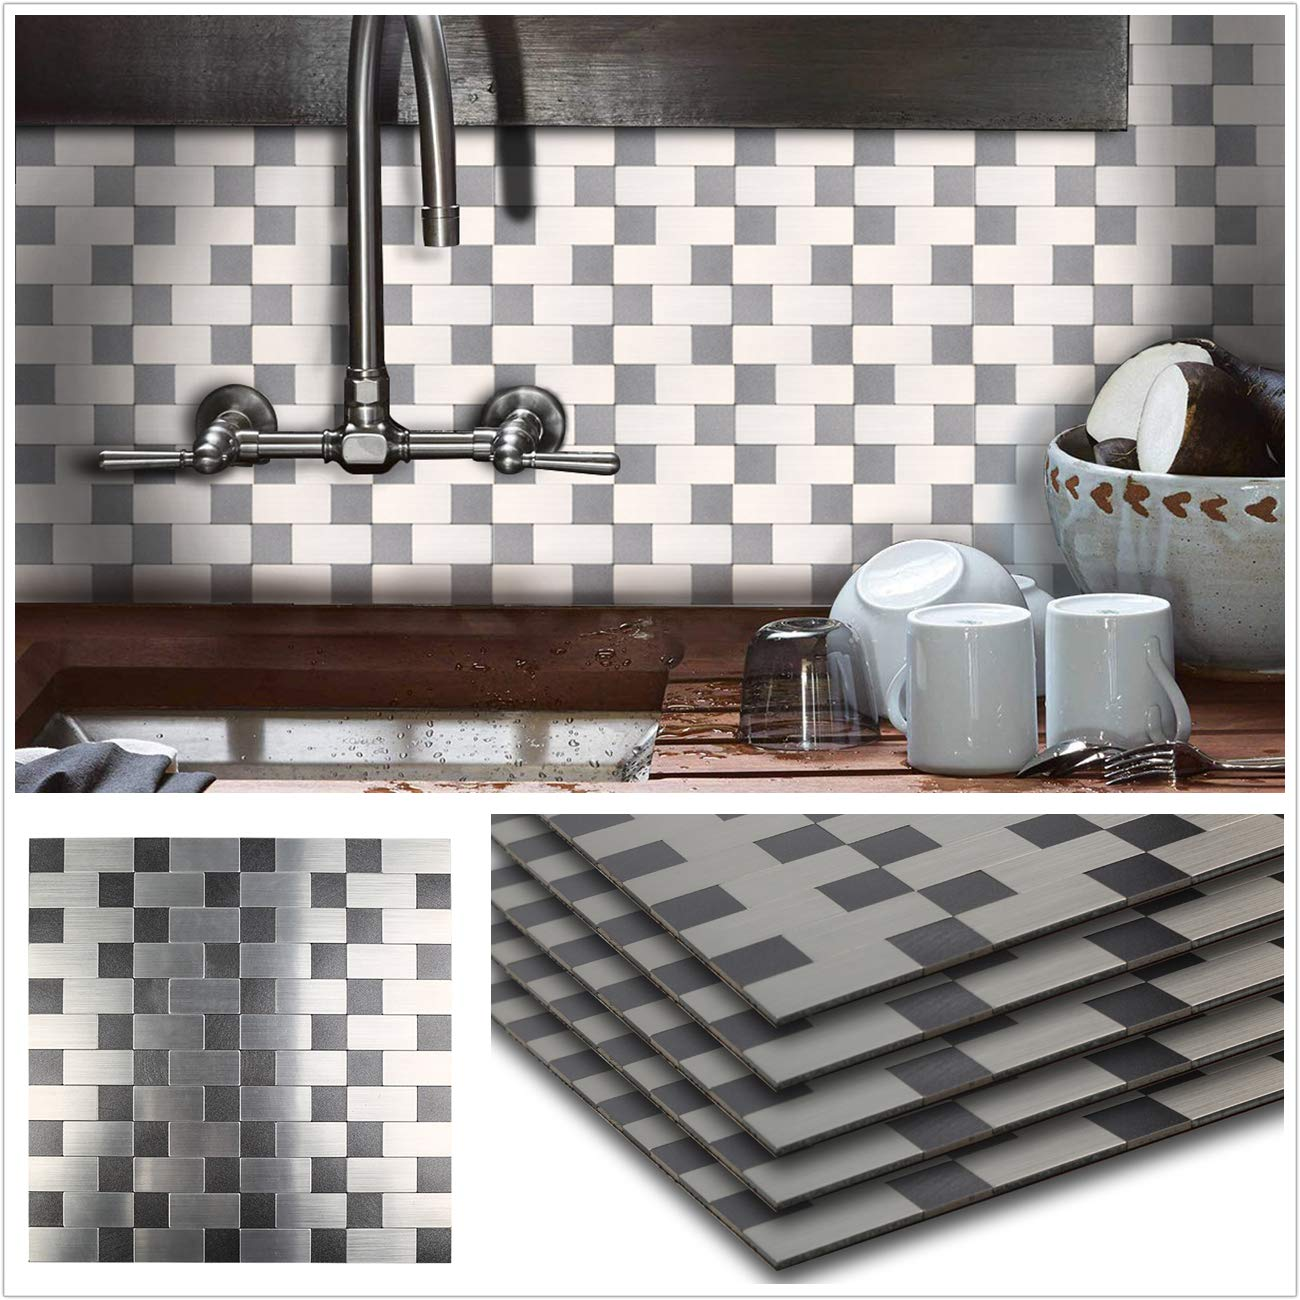 HomeyStyle Peel and Stick Tile Backsplash for Kitchen Wall Decor Meal Mosaic Tiles Sticker,Subway Black/&Silver Puzzle 12x12 x 5 Tiles